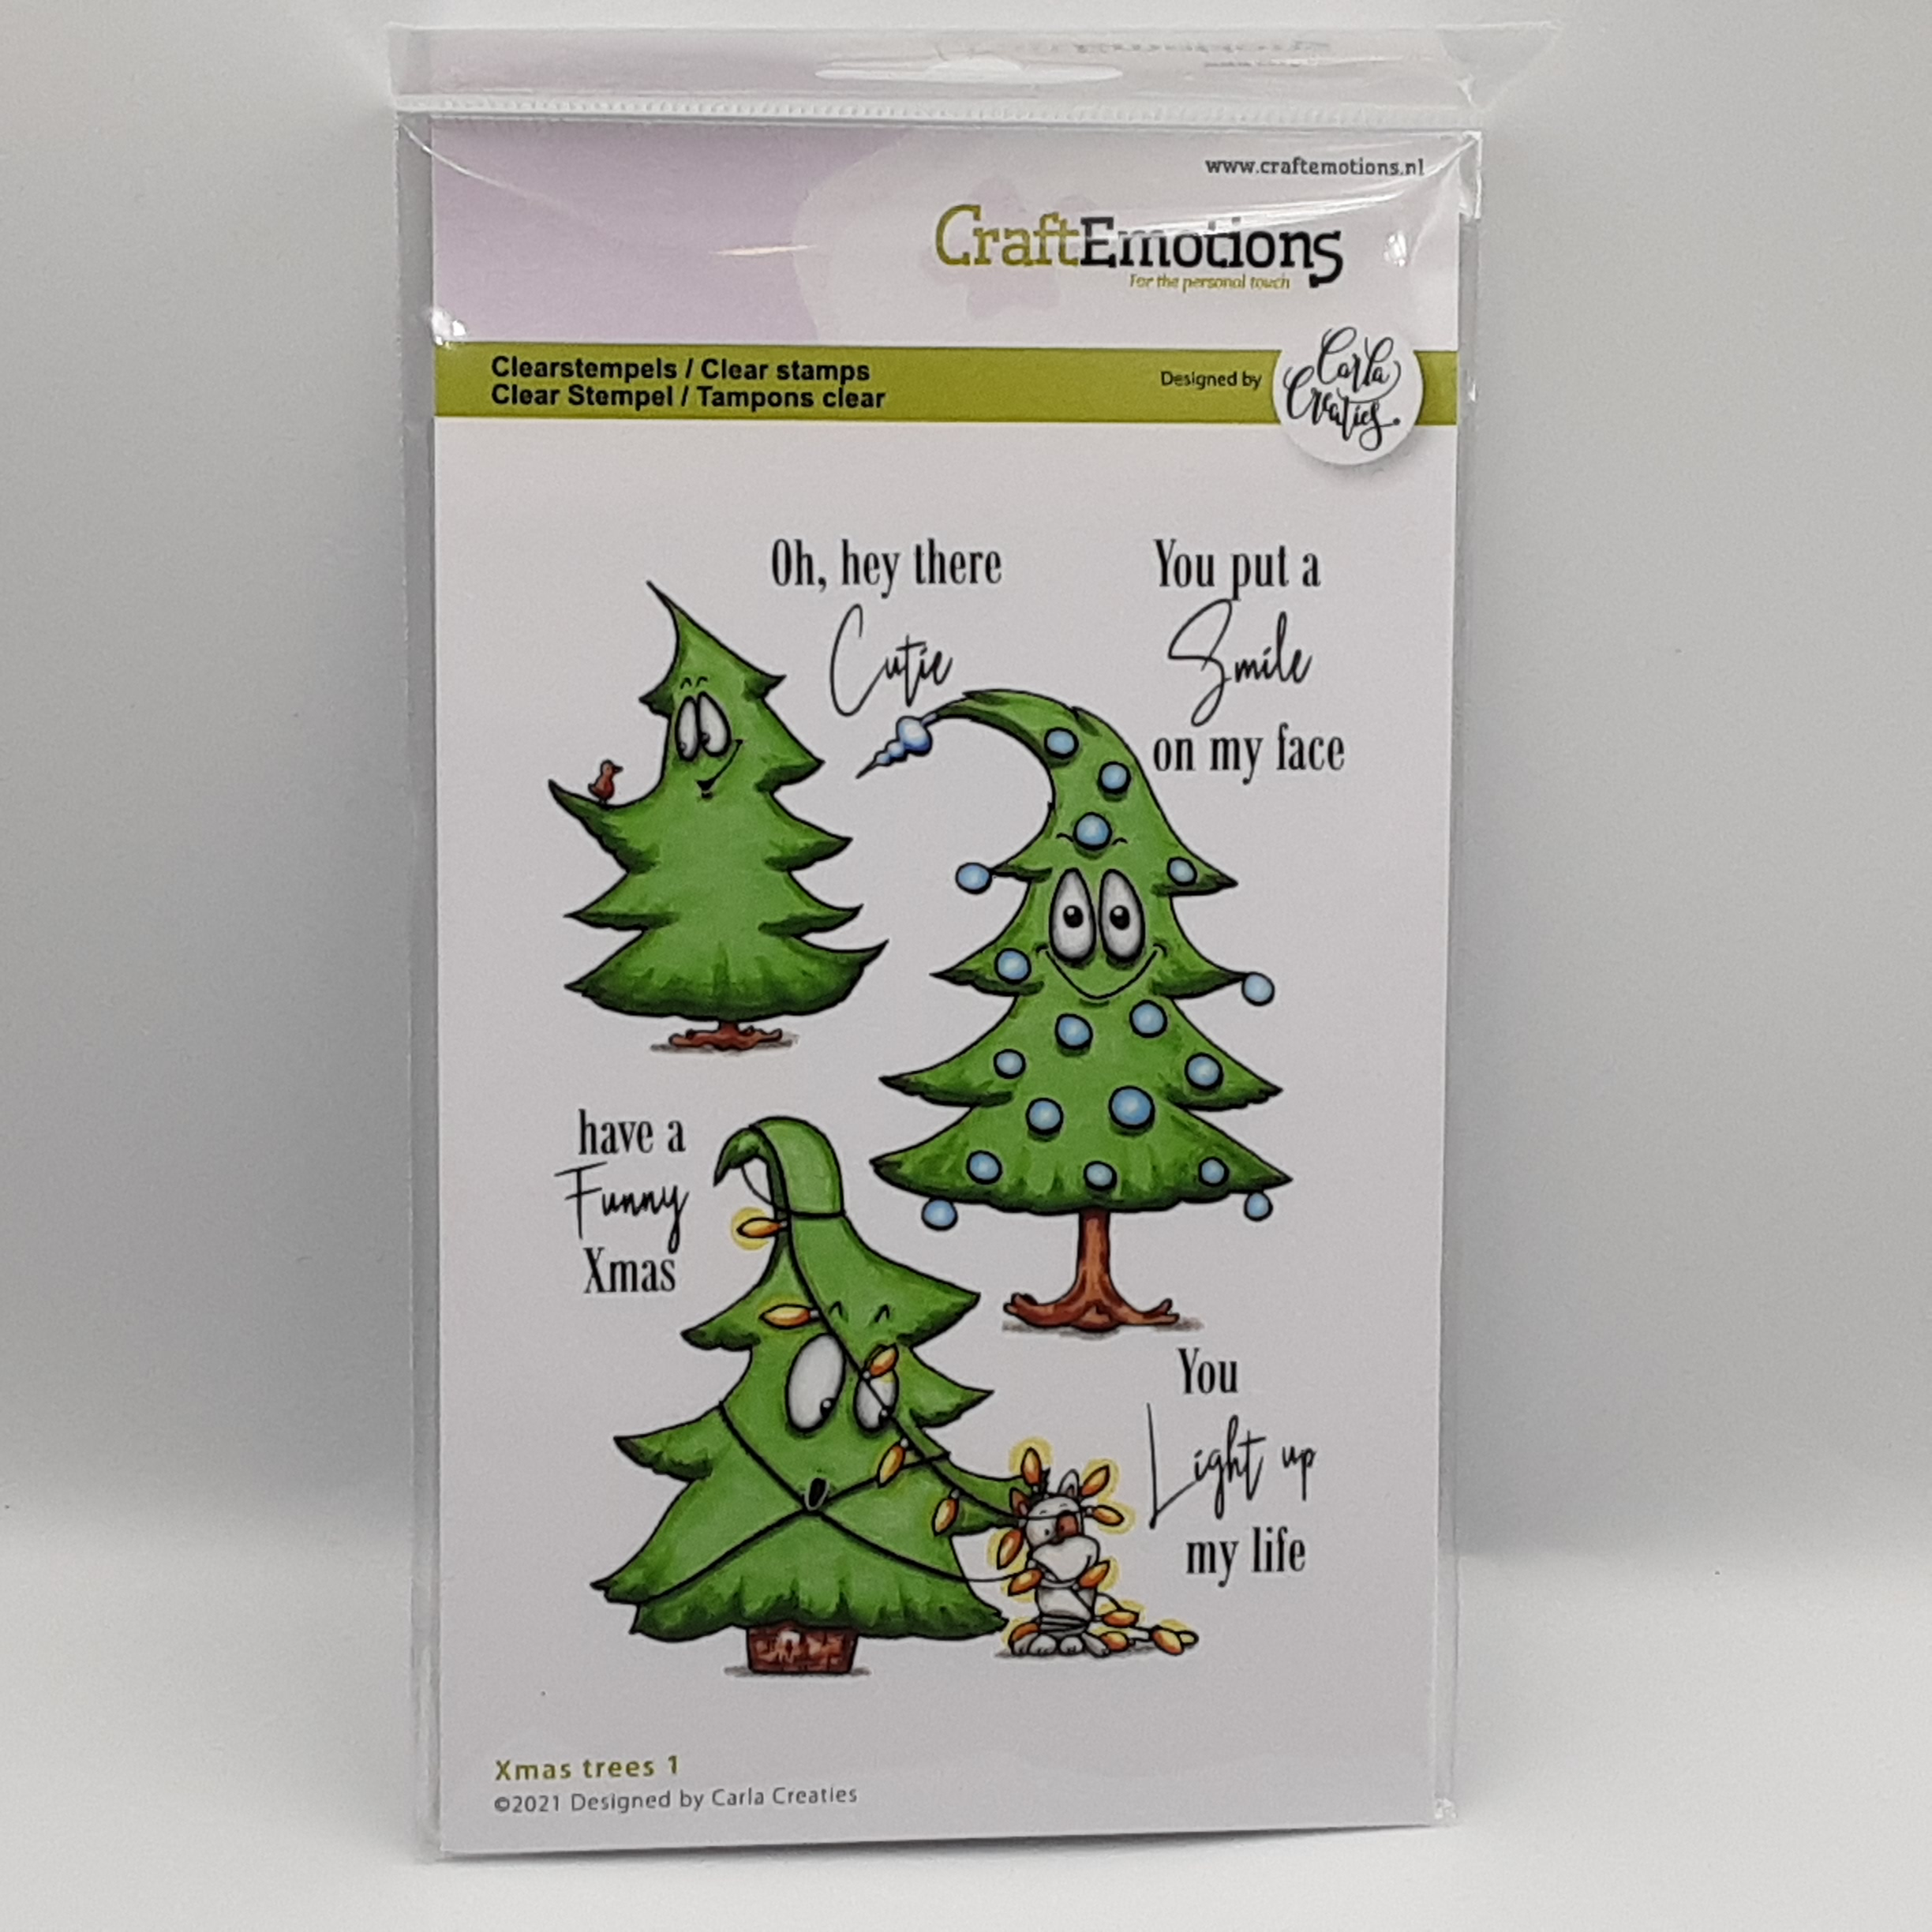 Xmas trees 1 (Engels) A6 clear stamp